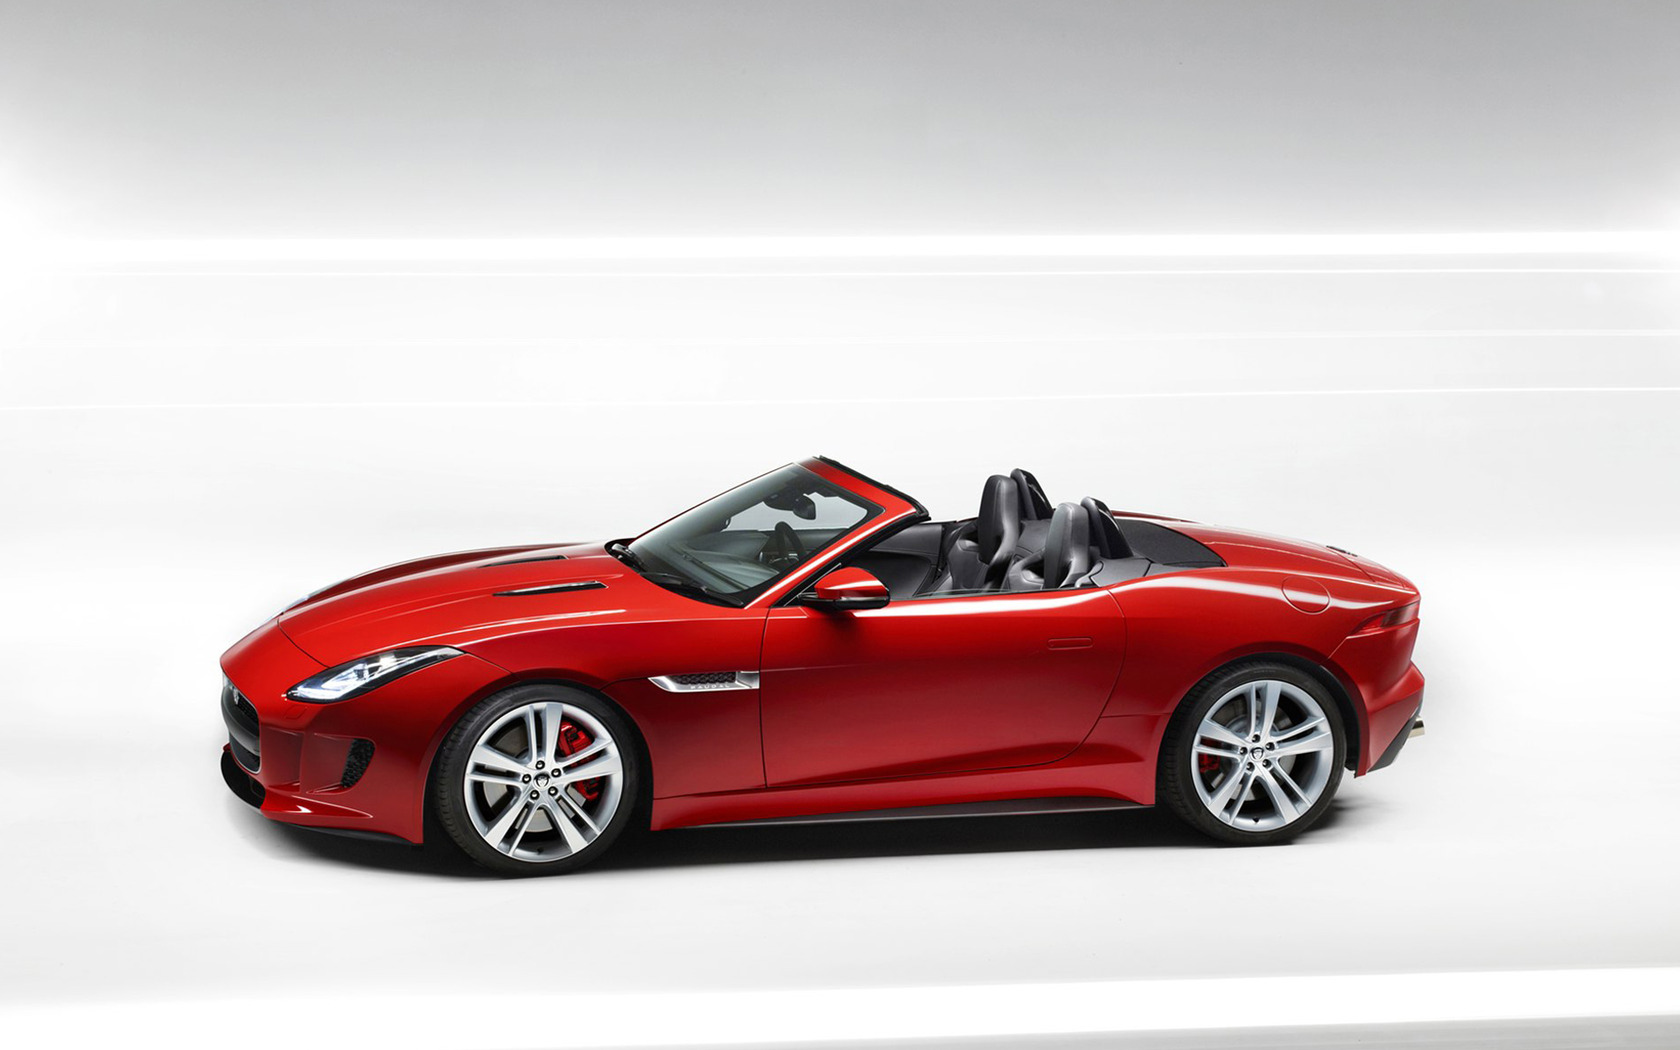 2014 Jaguar F Type wallpaper 29 1680x1050